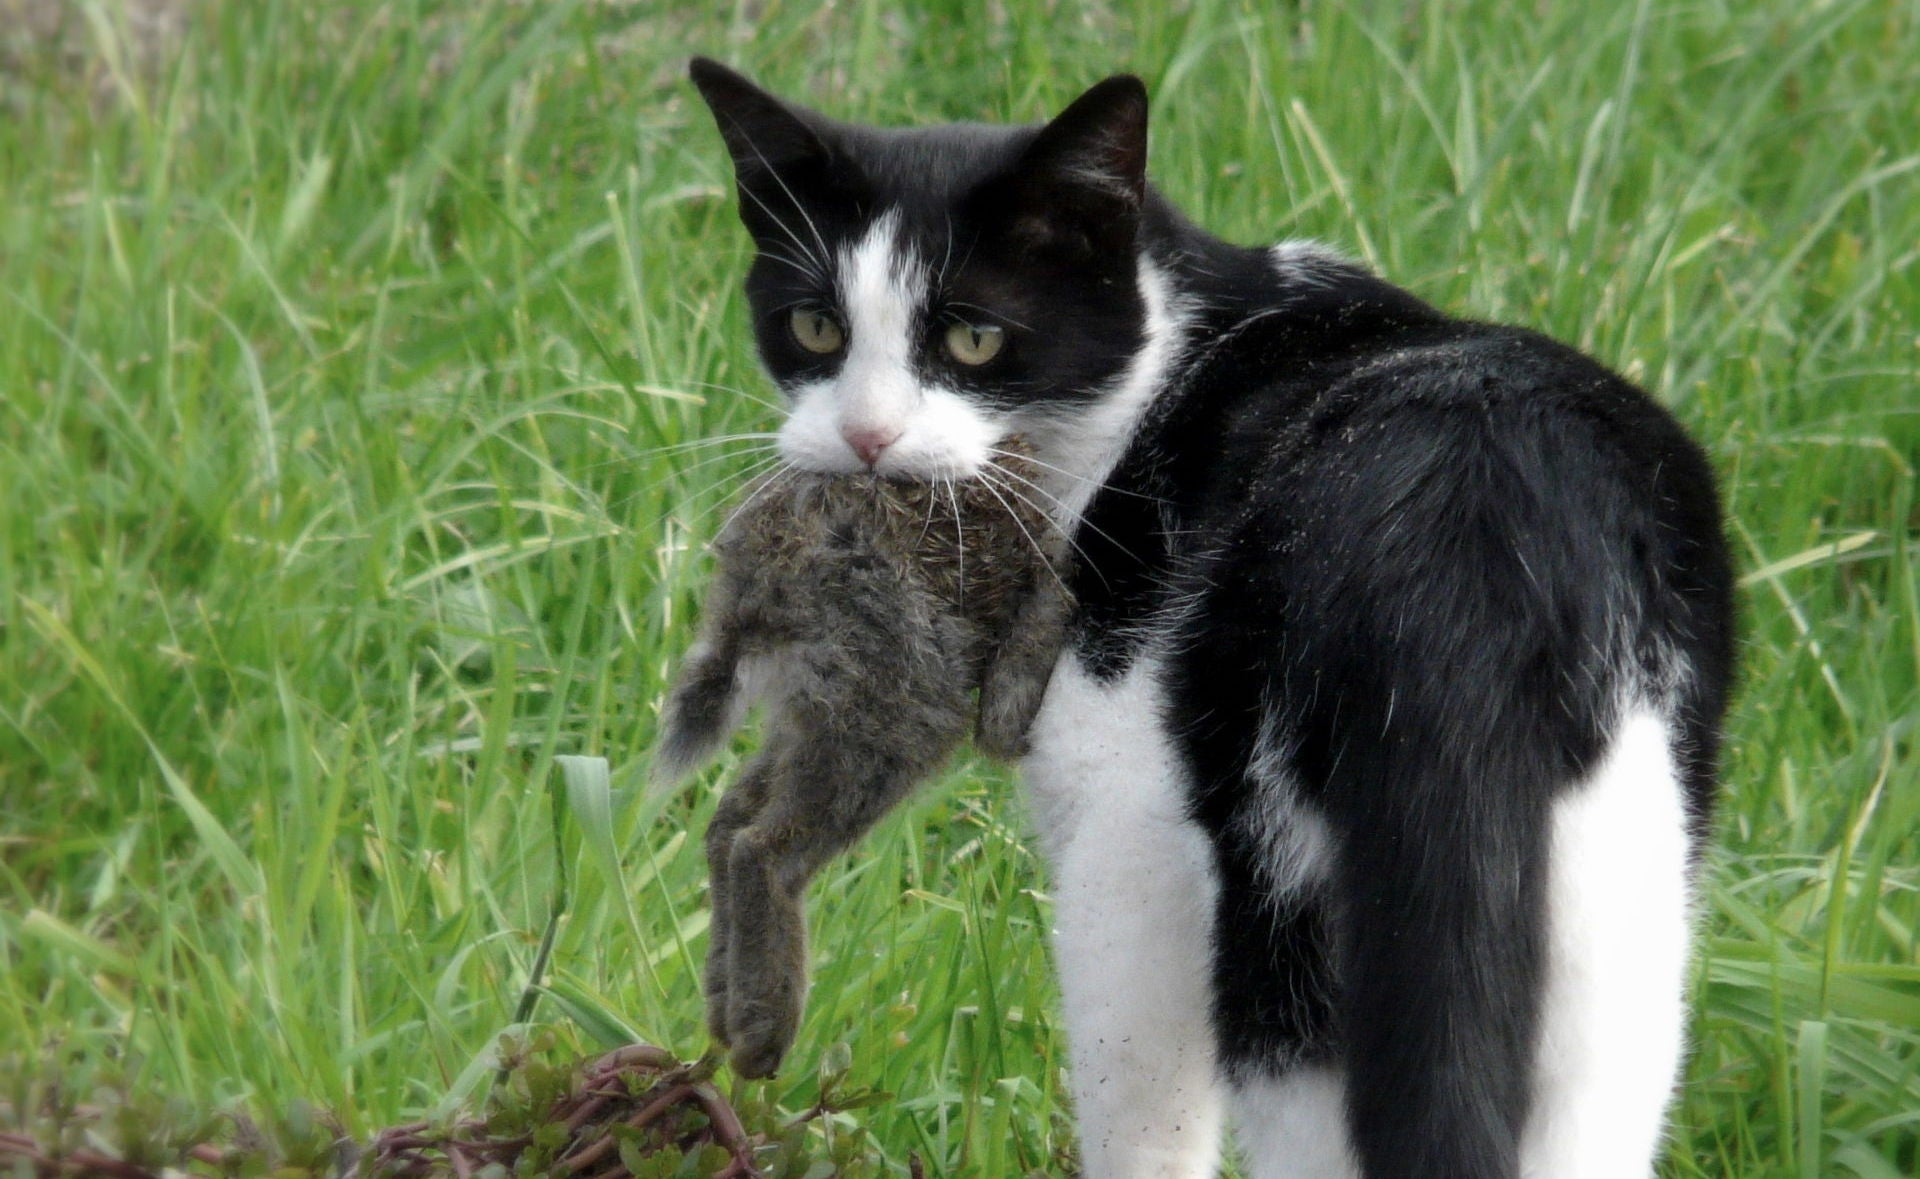 Australian Researchers Say Feral Cats Are An Ecological Disaster